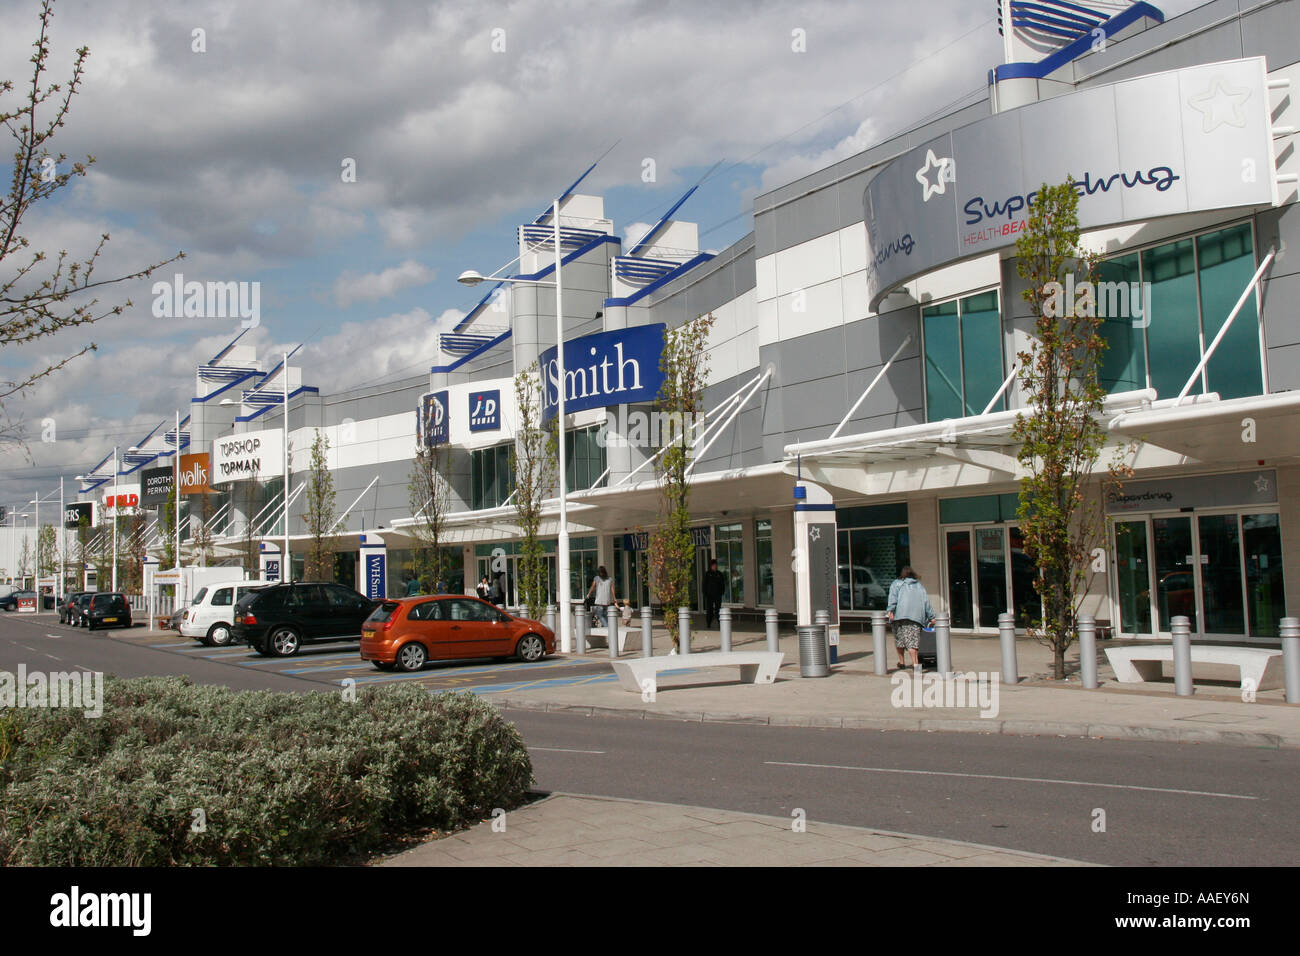 A fashion shop in Exeter's Princesshay Shopping Centre is about to close, and there's bargains galore. New Look Men is downsizing its stock and returning to its parent New Look store nearby.